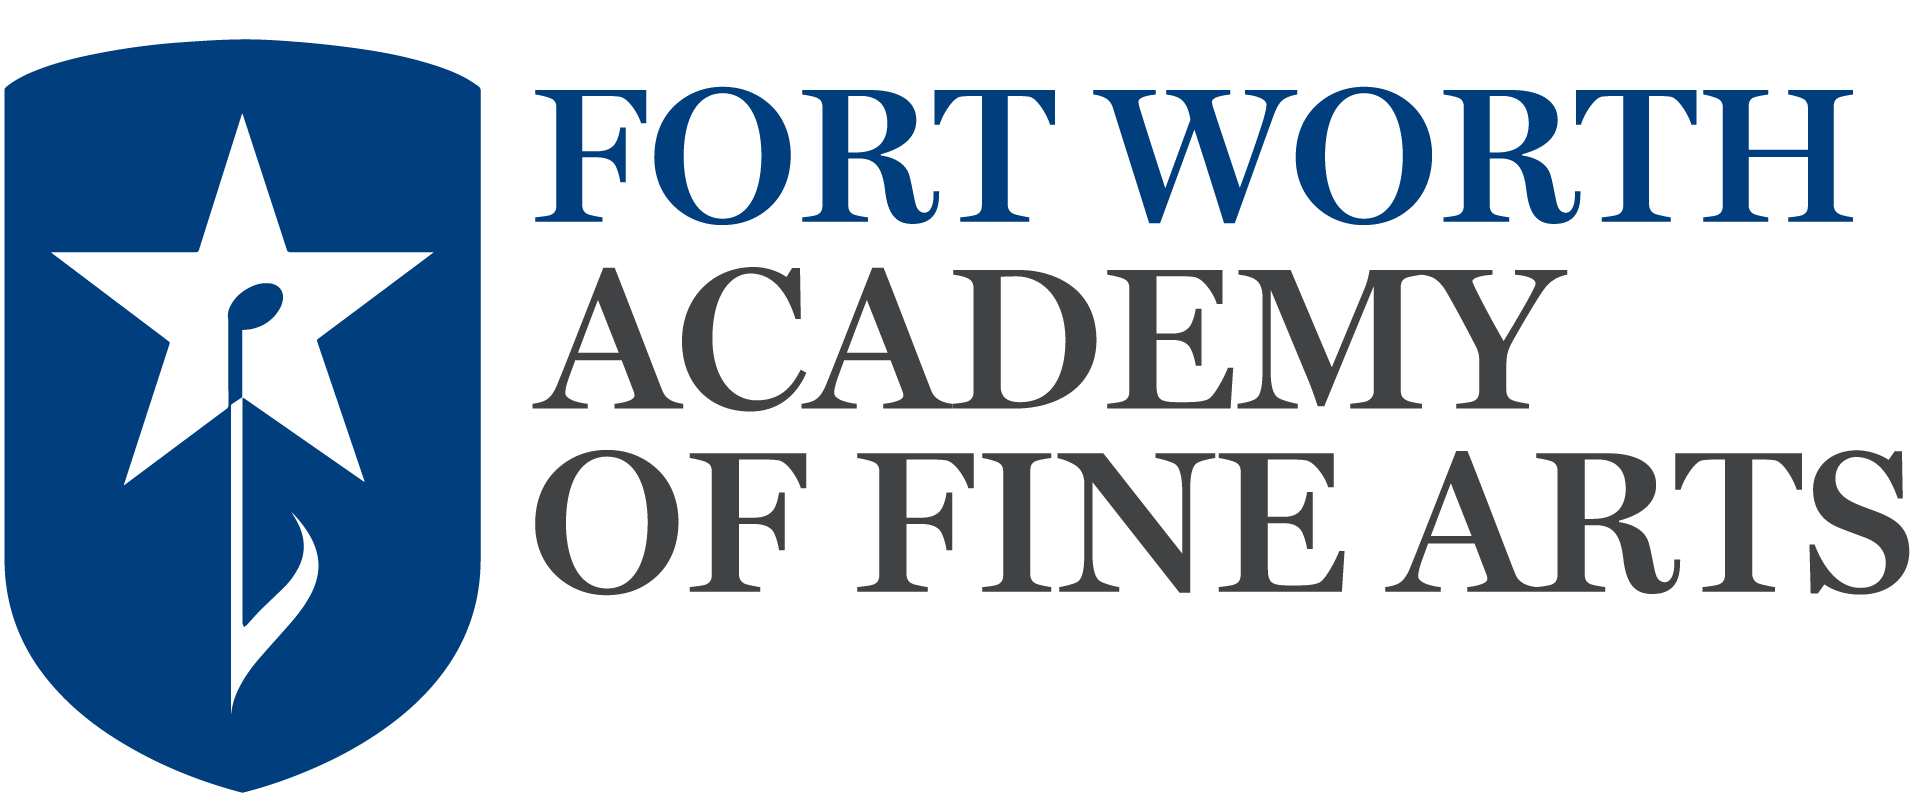 Fort Worth Academy of Fine Arts